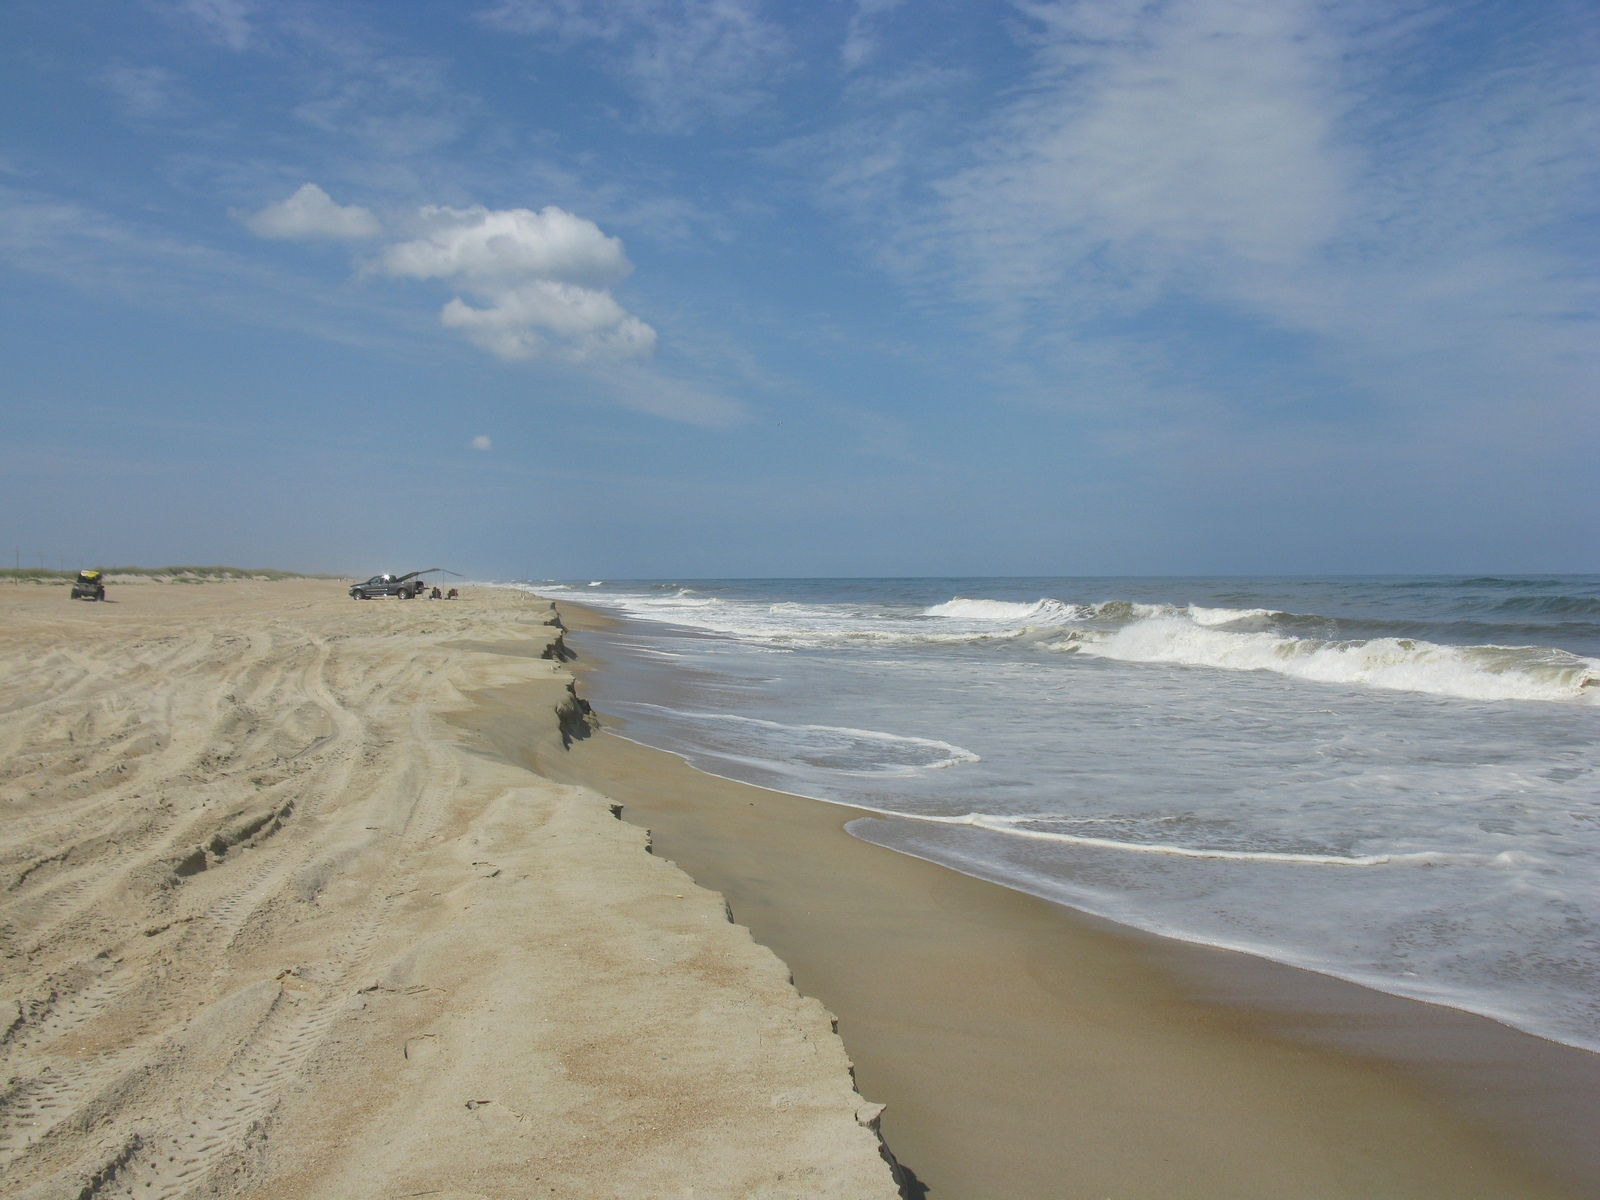 hatteras_beach_breakers_2.jpg